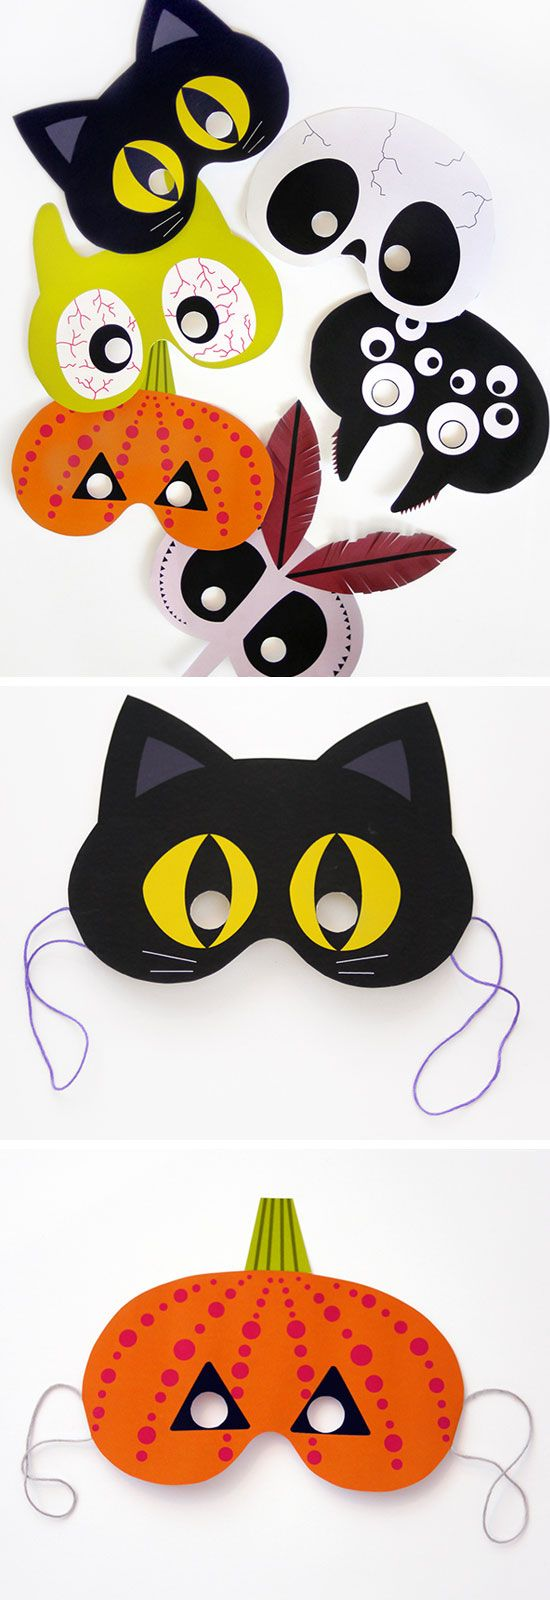 Kids halloween craft kits - 20 Super Easy Halloween Crafts For Kids To Make